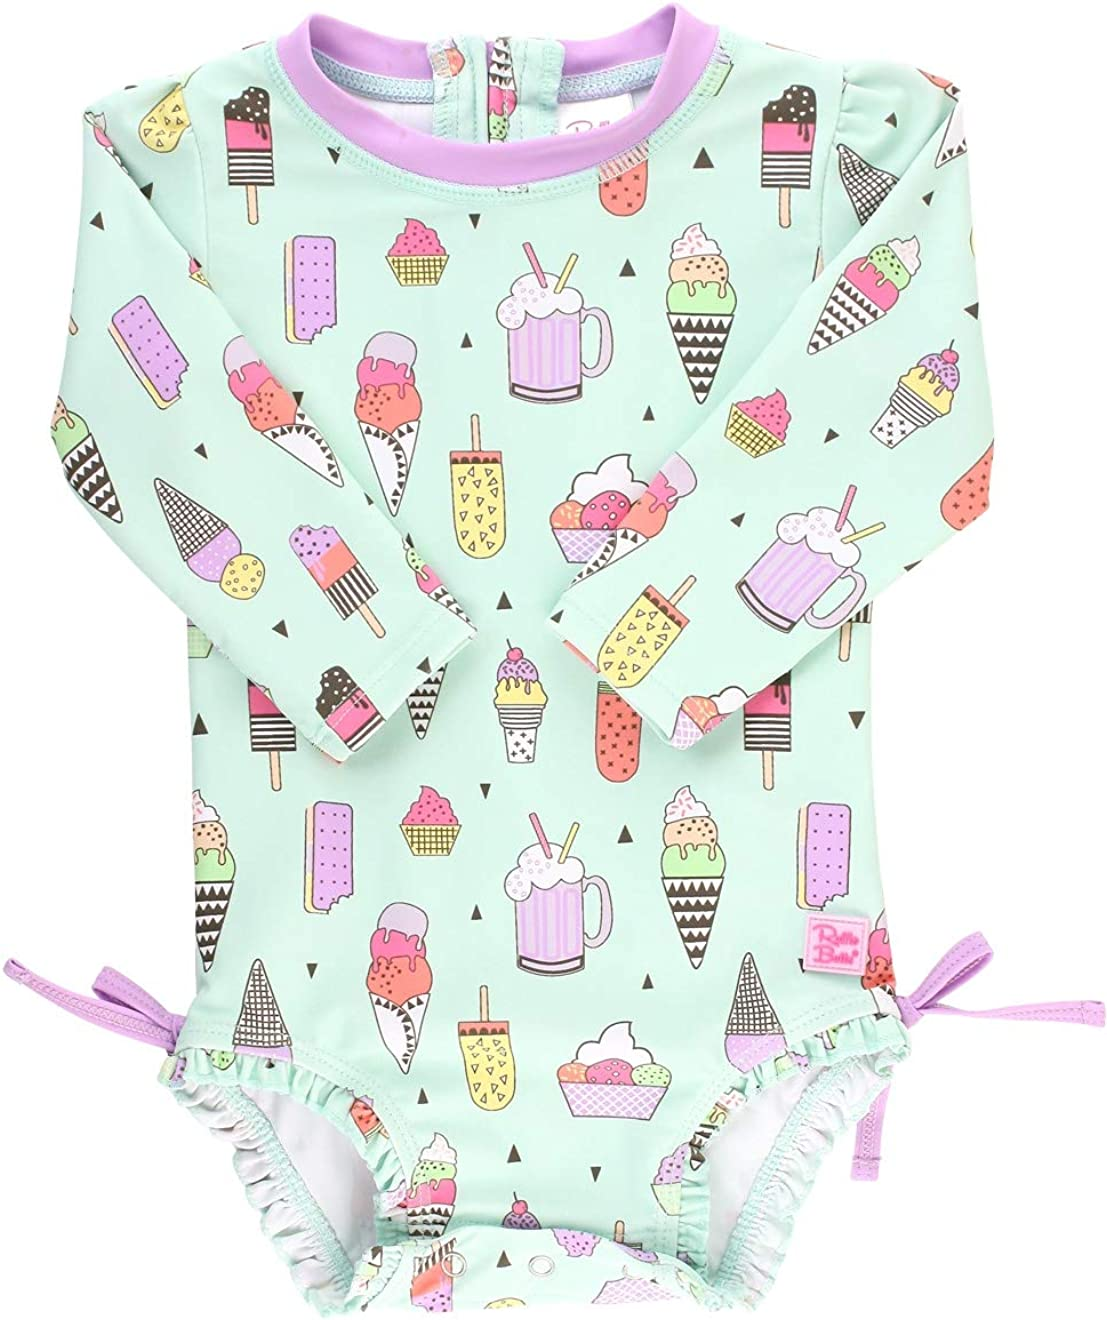 RuffleButts Baby//Toddler Girls Long Sleeve One Piece Swimsuit Sun Protection Pink Polka Dot with UPF 50 3-6m